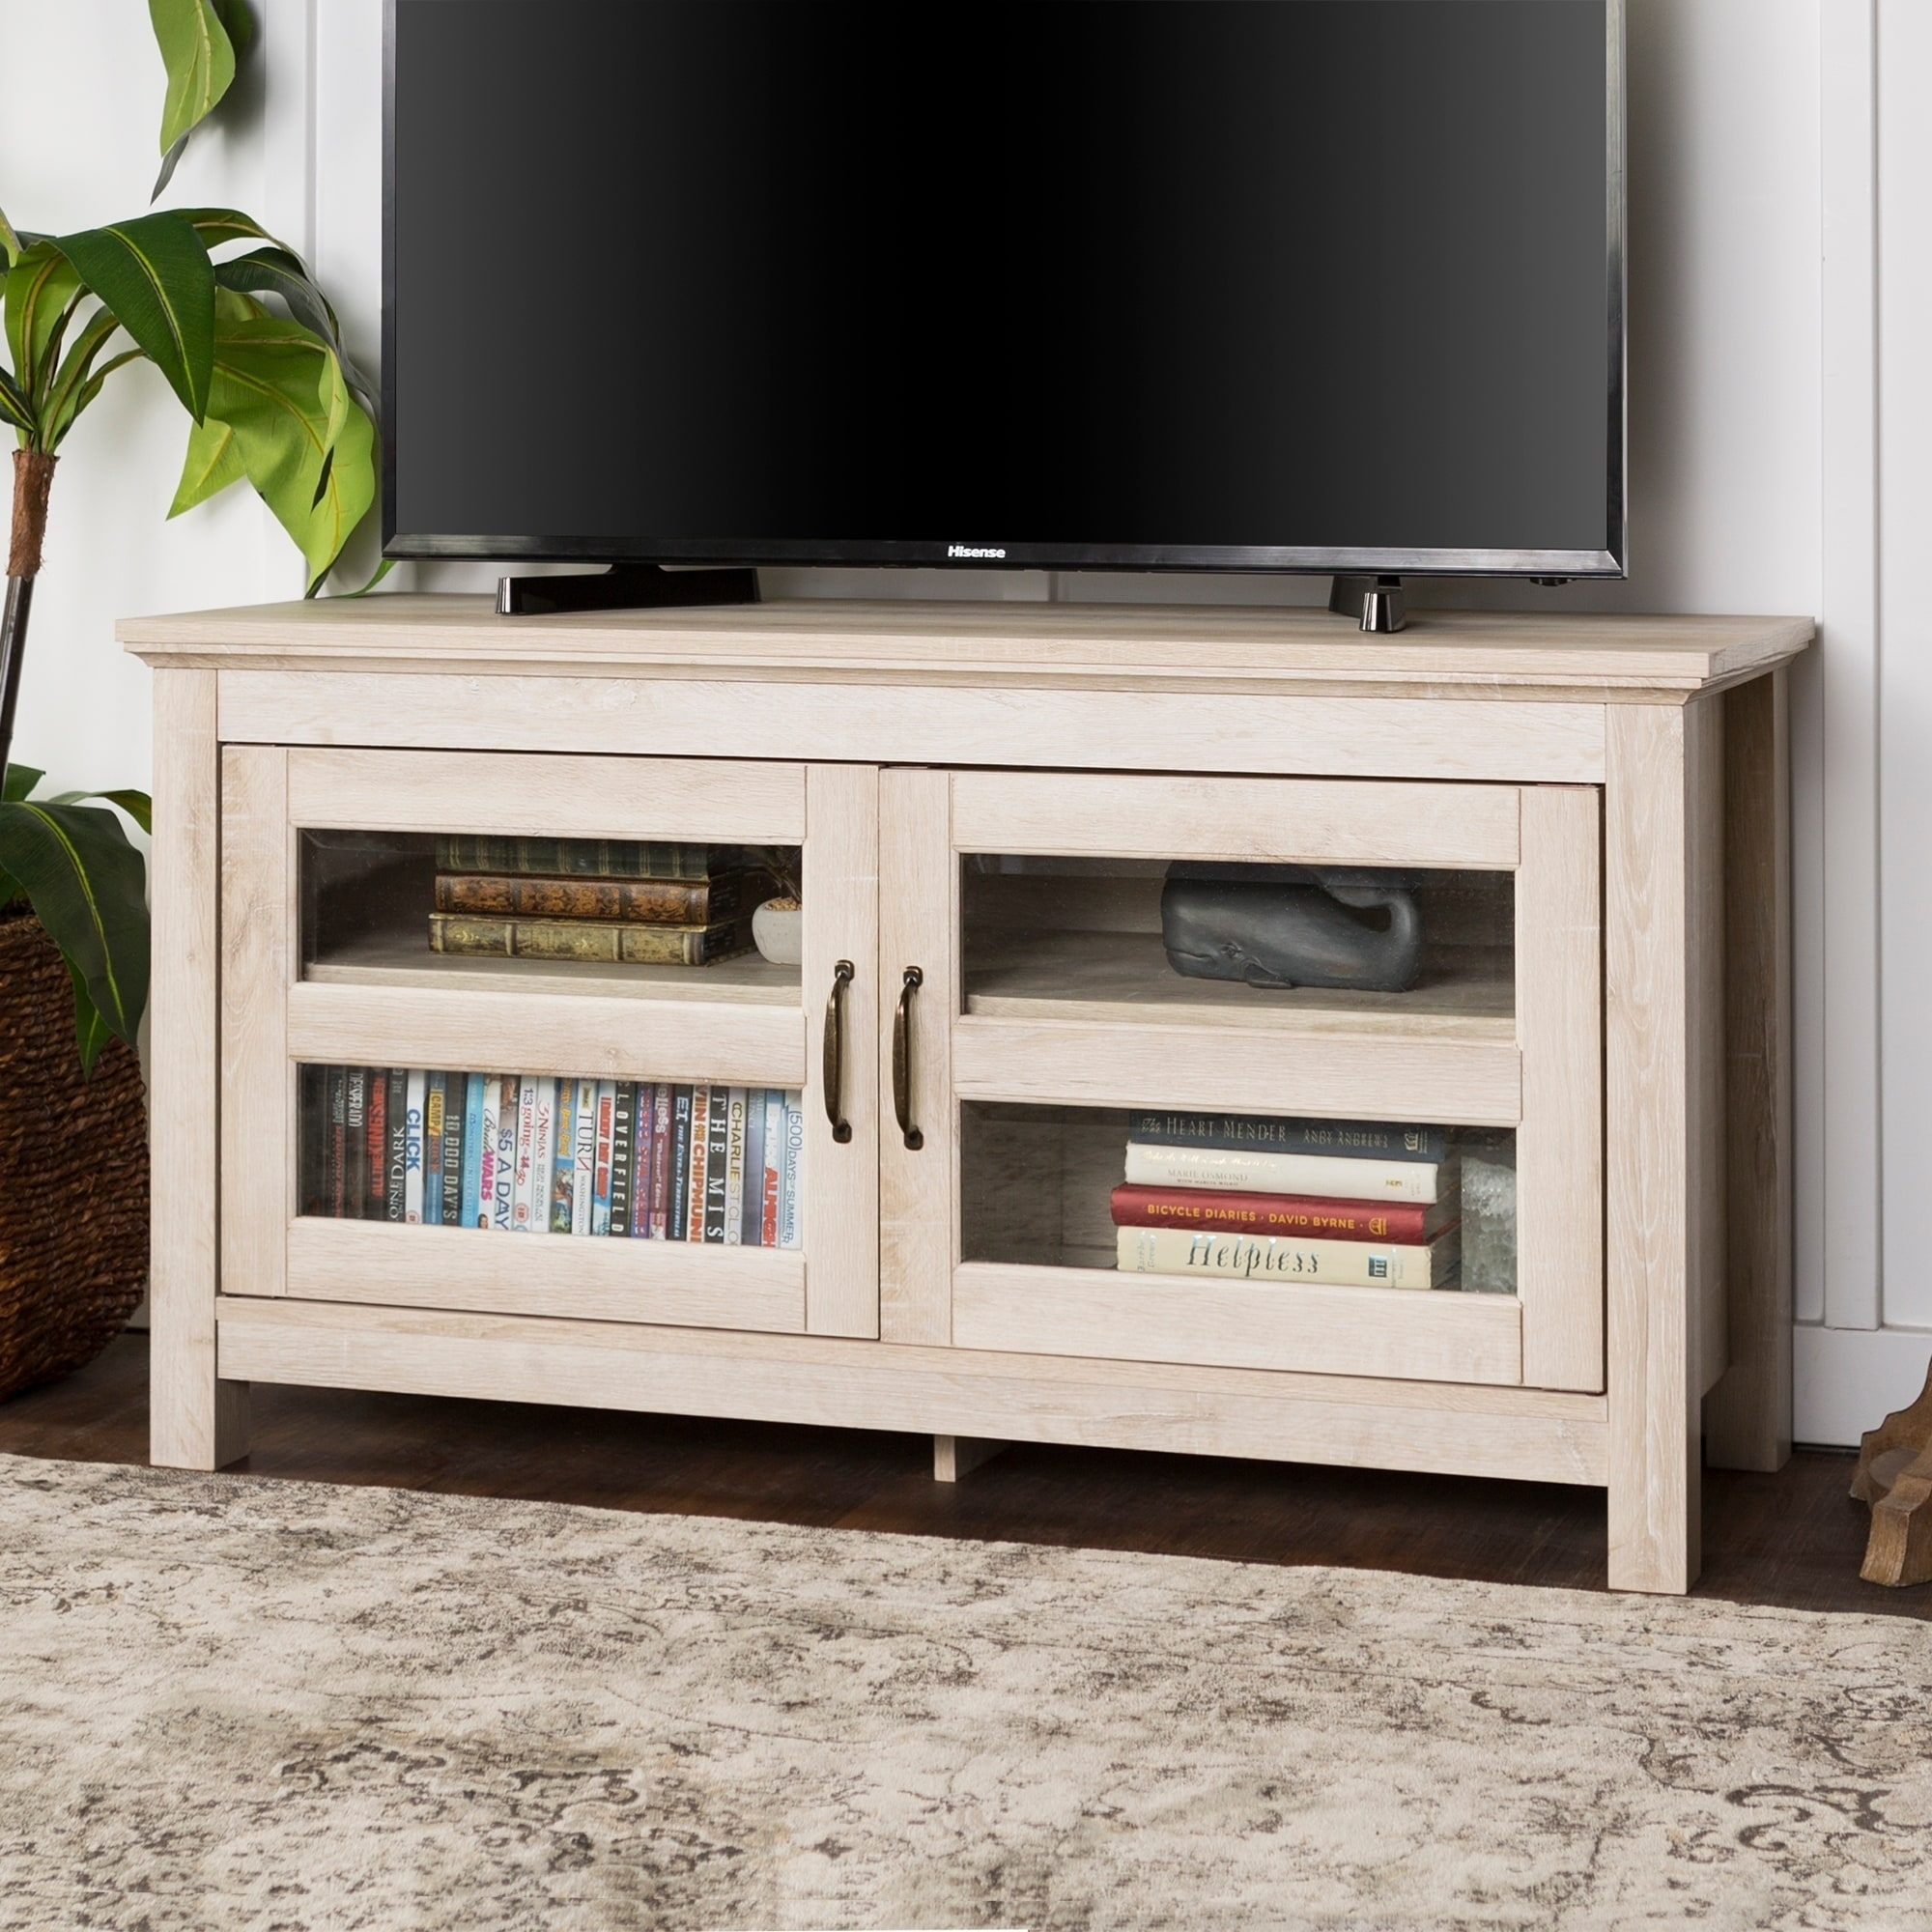 Charmant 44 Inch Wood TV Stand/ Storage Console